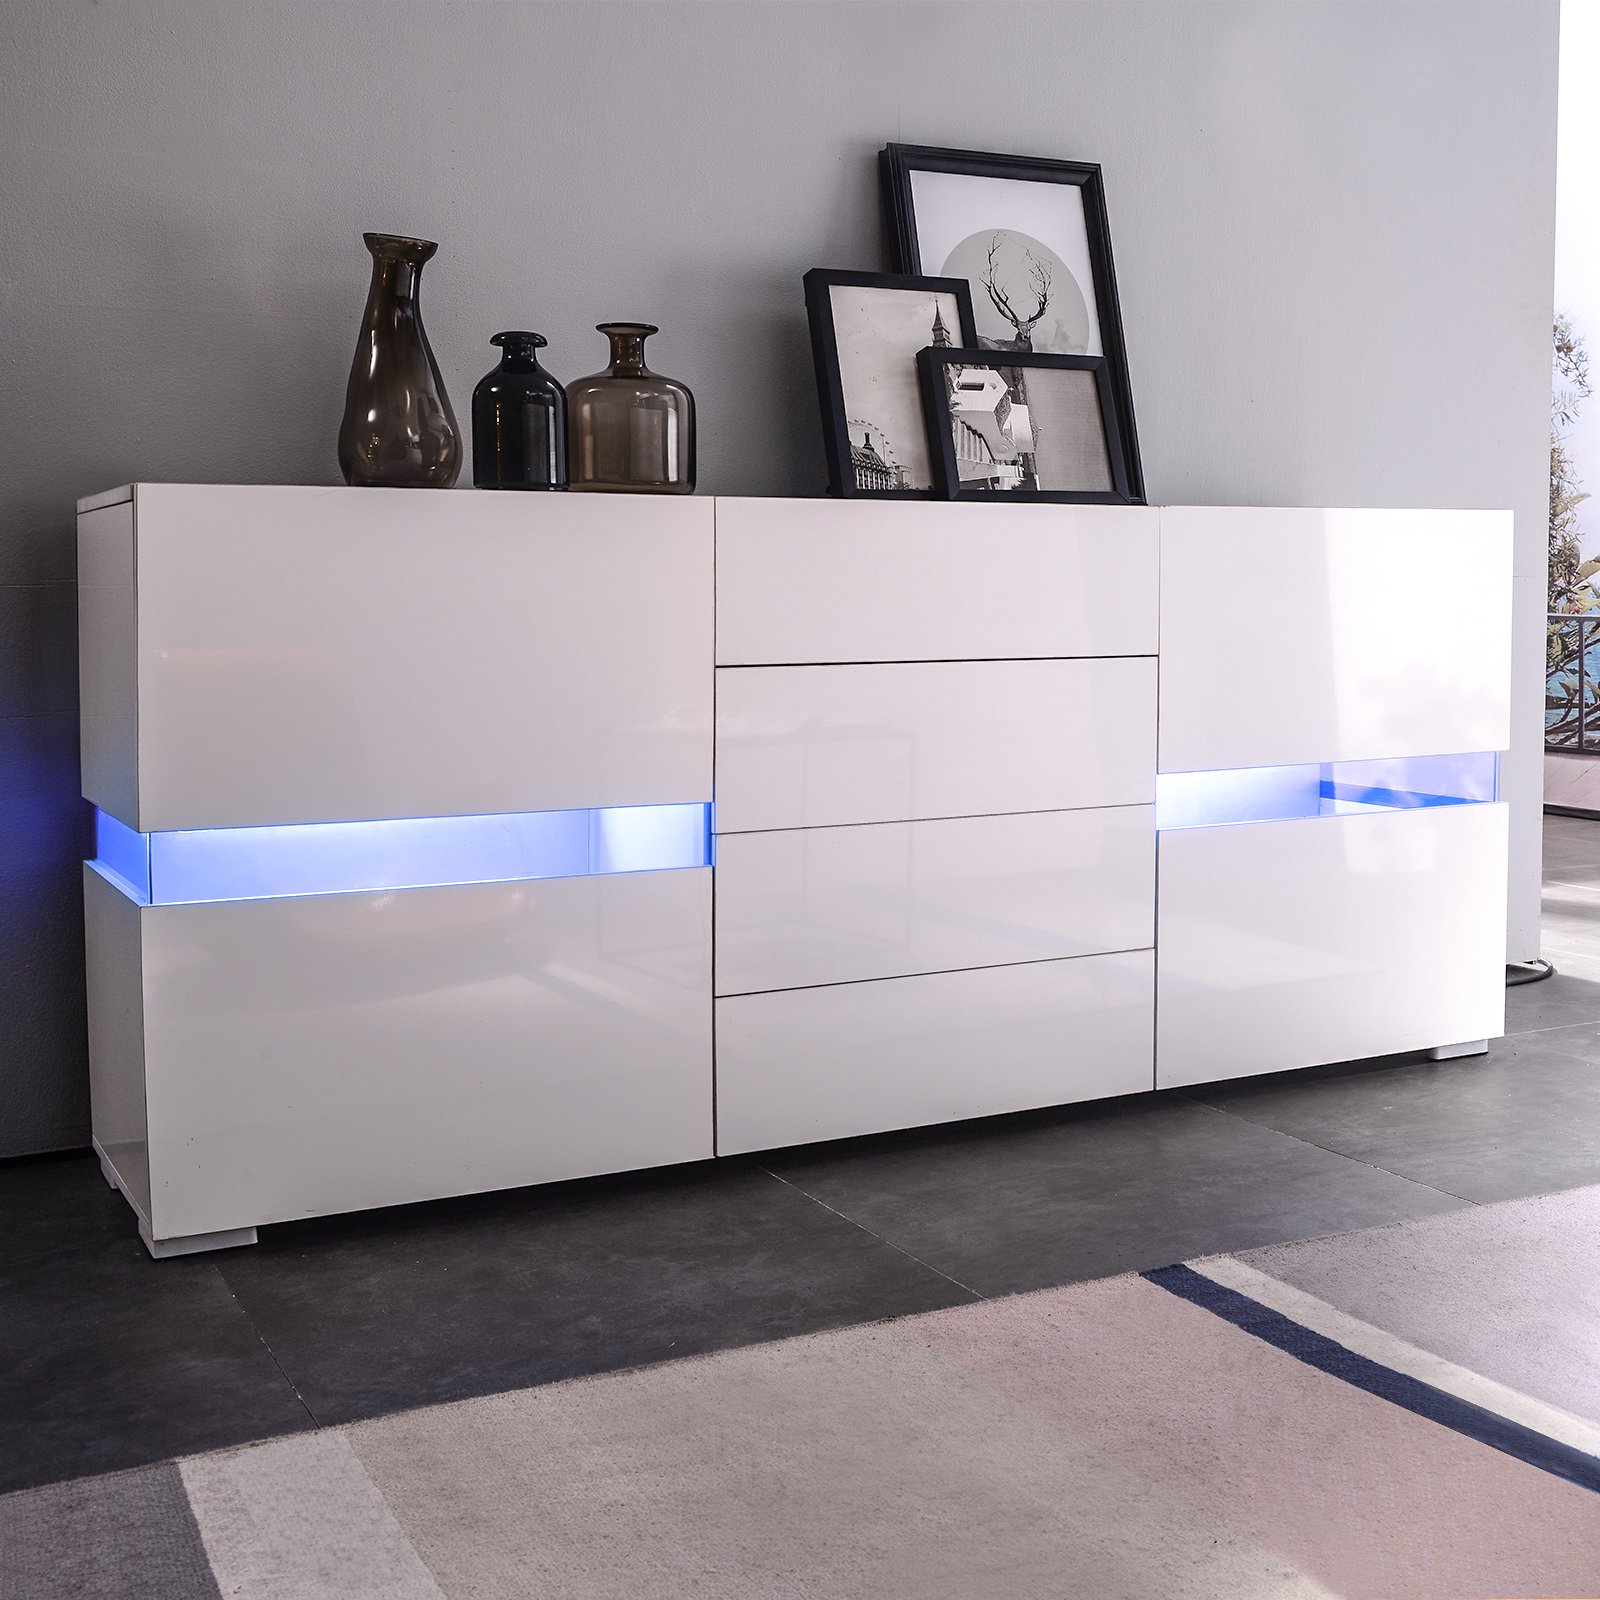 mecor Sideboard Cabinet Buffet w/LED Light, Kitchen LED Storage Cabinet Server Console Table, High Gloss w/ 2 Doors & 4 Drawers White by mecor